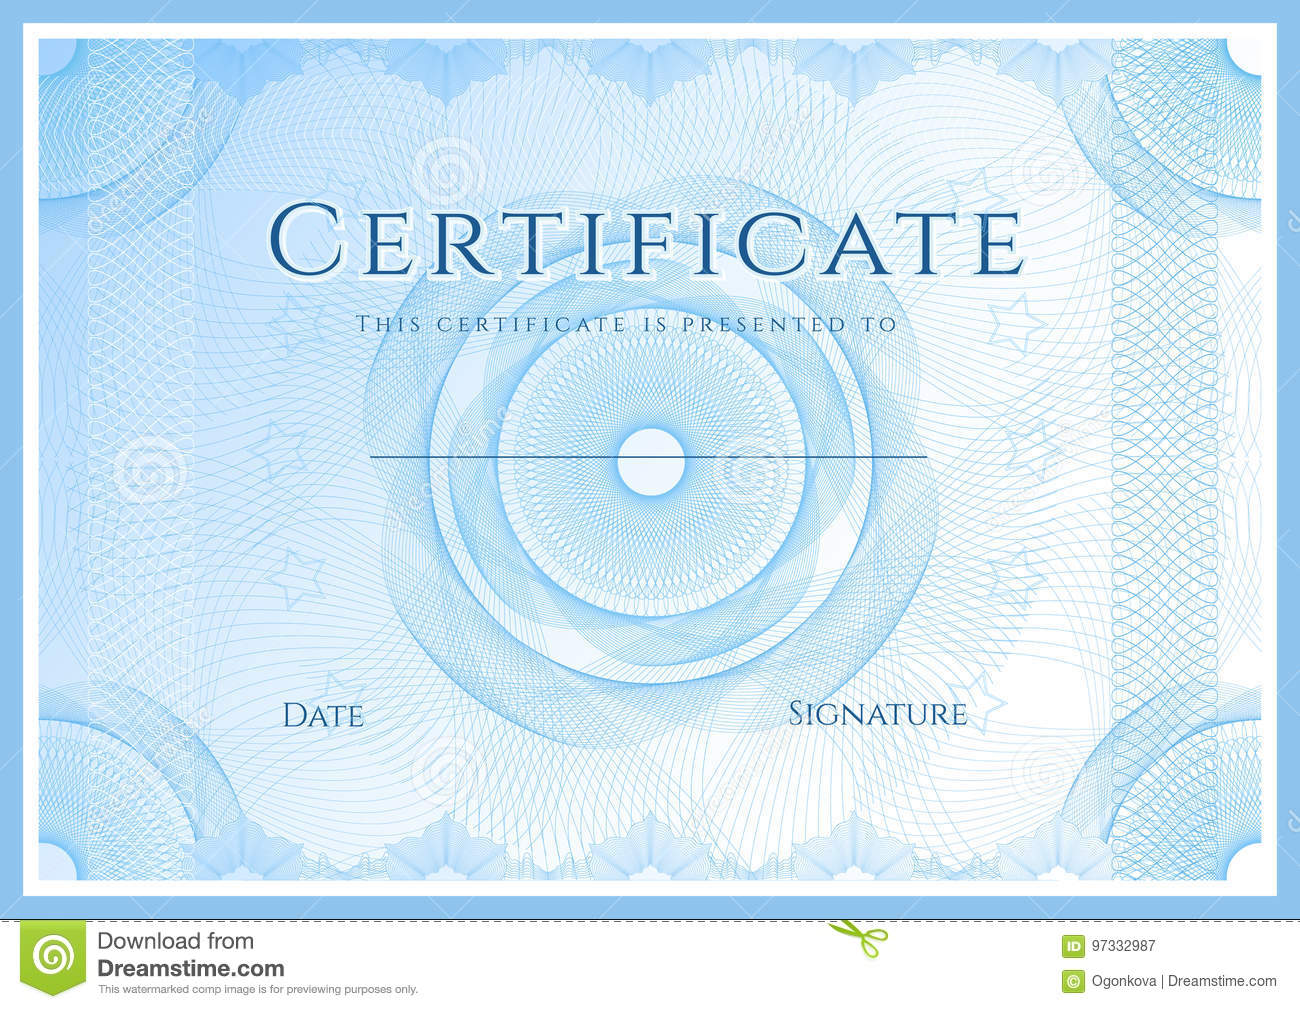 Certificate, Diploma Of Completion Design Template Stock Vector